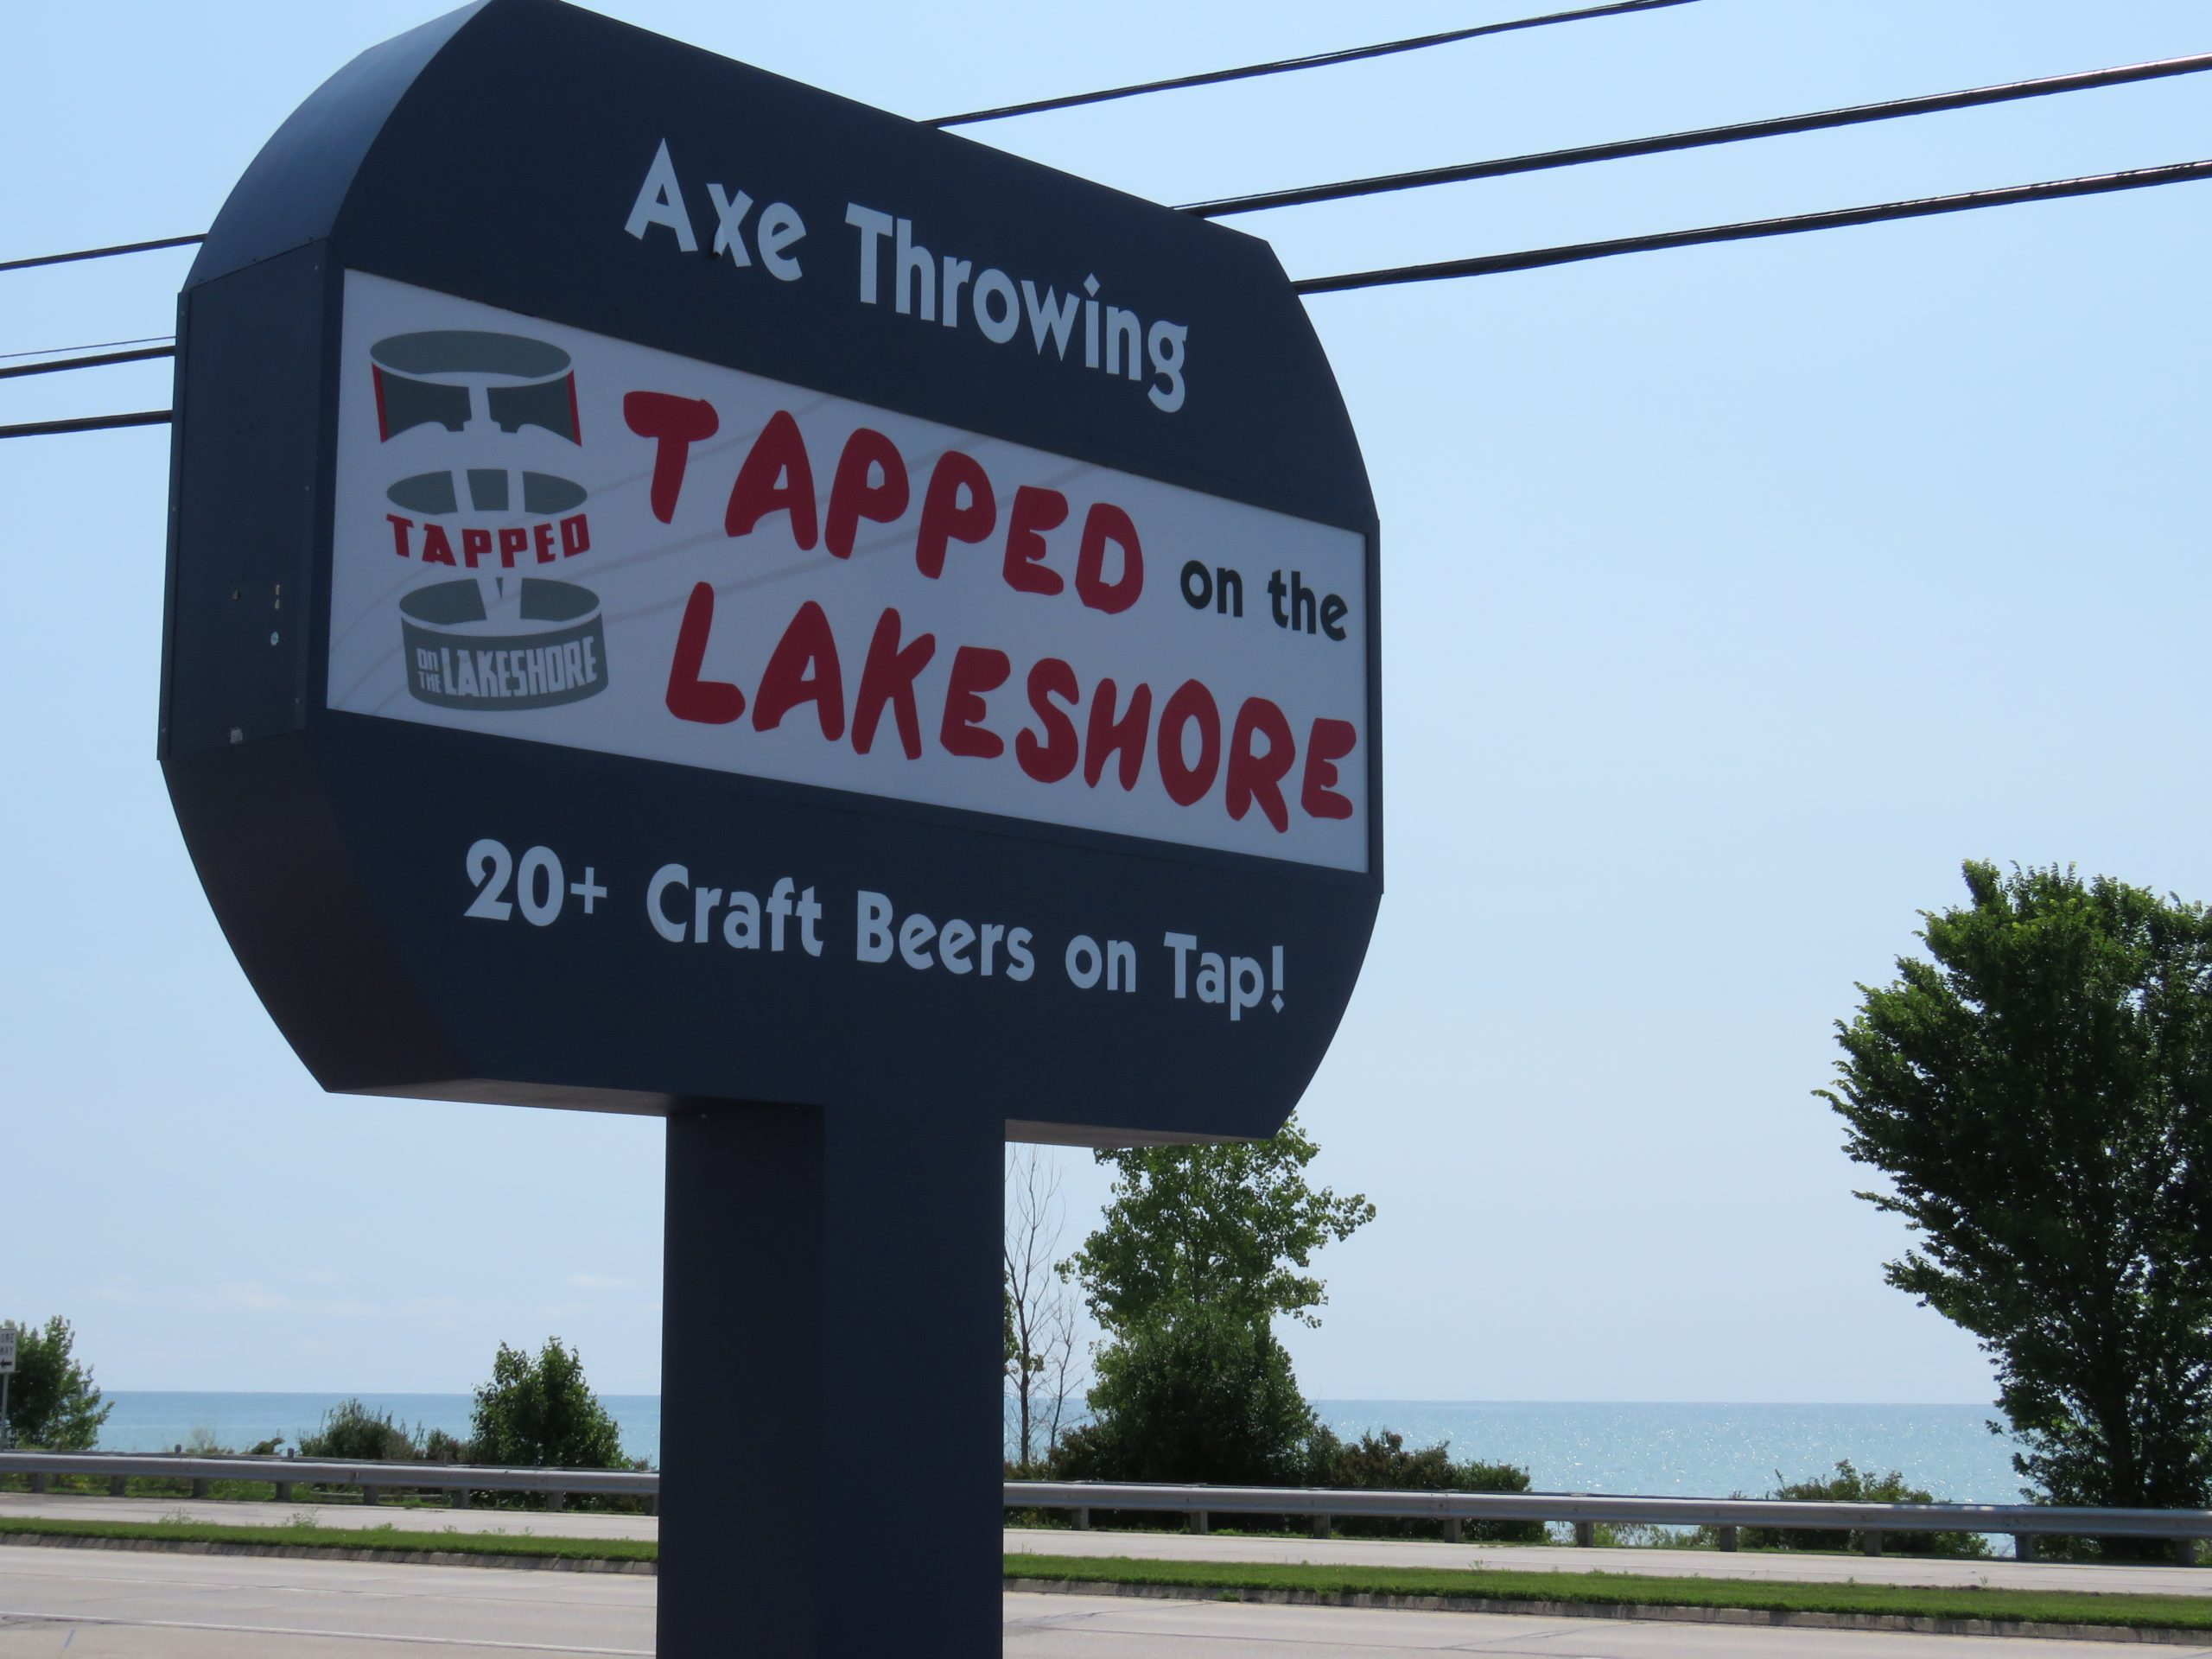 Tapped on the Lakeshore to Open Soon